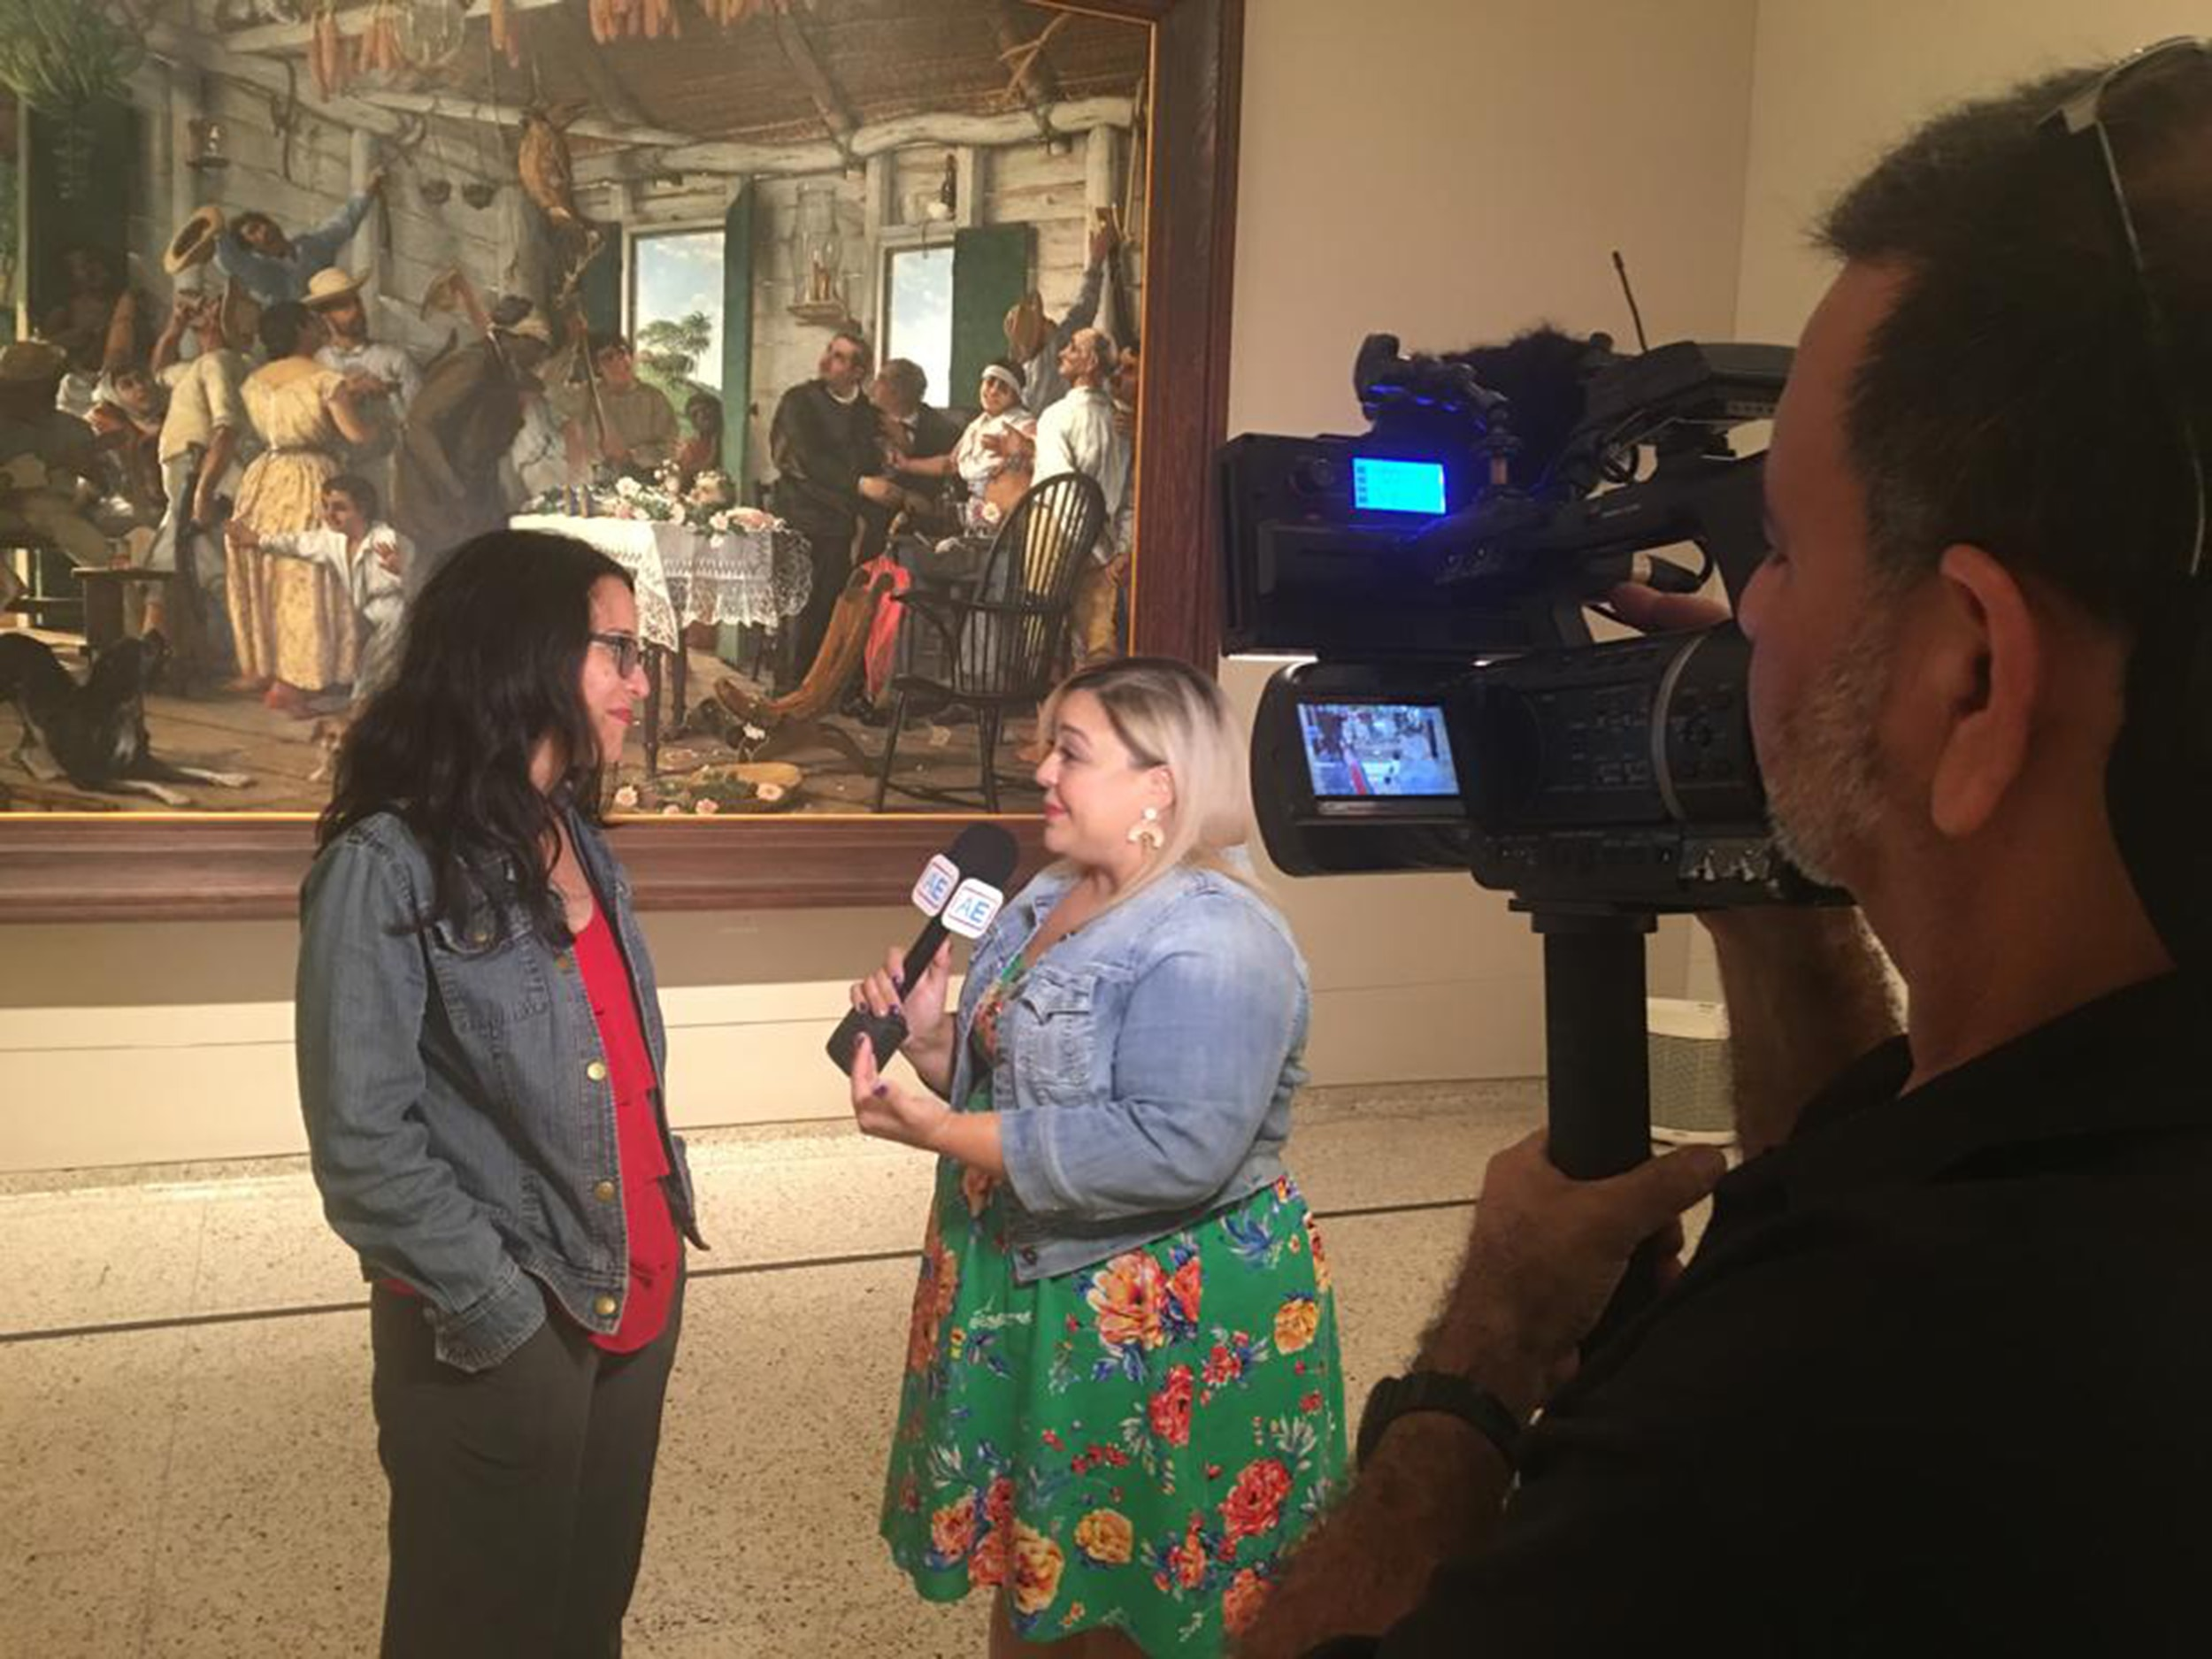 The author is seen standing in the museum talking to a reporter behind a camera.